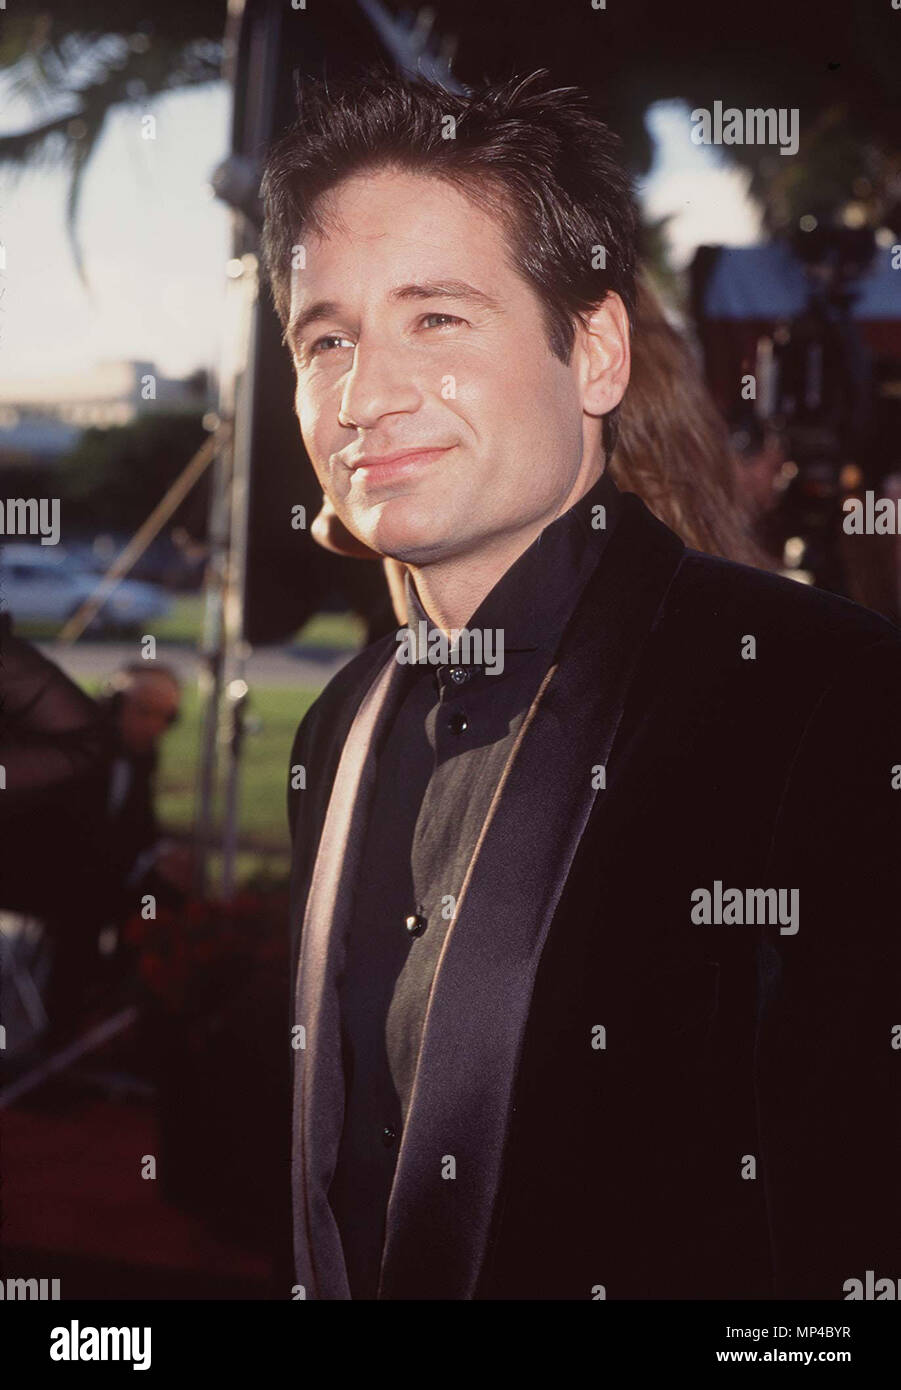 Duchovny, David ( X-Files )========== Duchovny, David ( X-Files )  Event in Hollywood Life - California, Red Carpet Event, Vertical, USA, Film Industry, Celebrities, Photography, Bestof, Arts Culture and Entertainment, Topix Celebrities fashion, Best of, Hollywood Life, Event in Hollywood Life - California, Red Carpet and backstage, movie celebrities, TV celebrities, Music celebrities, Topix, Headshot 1993 to 1999,  inquiry tsuni@Gamma-USA.com , Credit Tsuni / USA,  , vertical, one person, - Stock Image